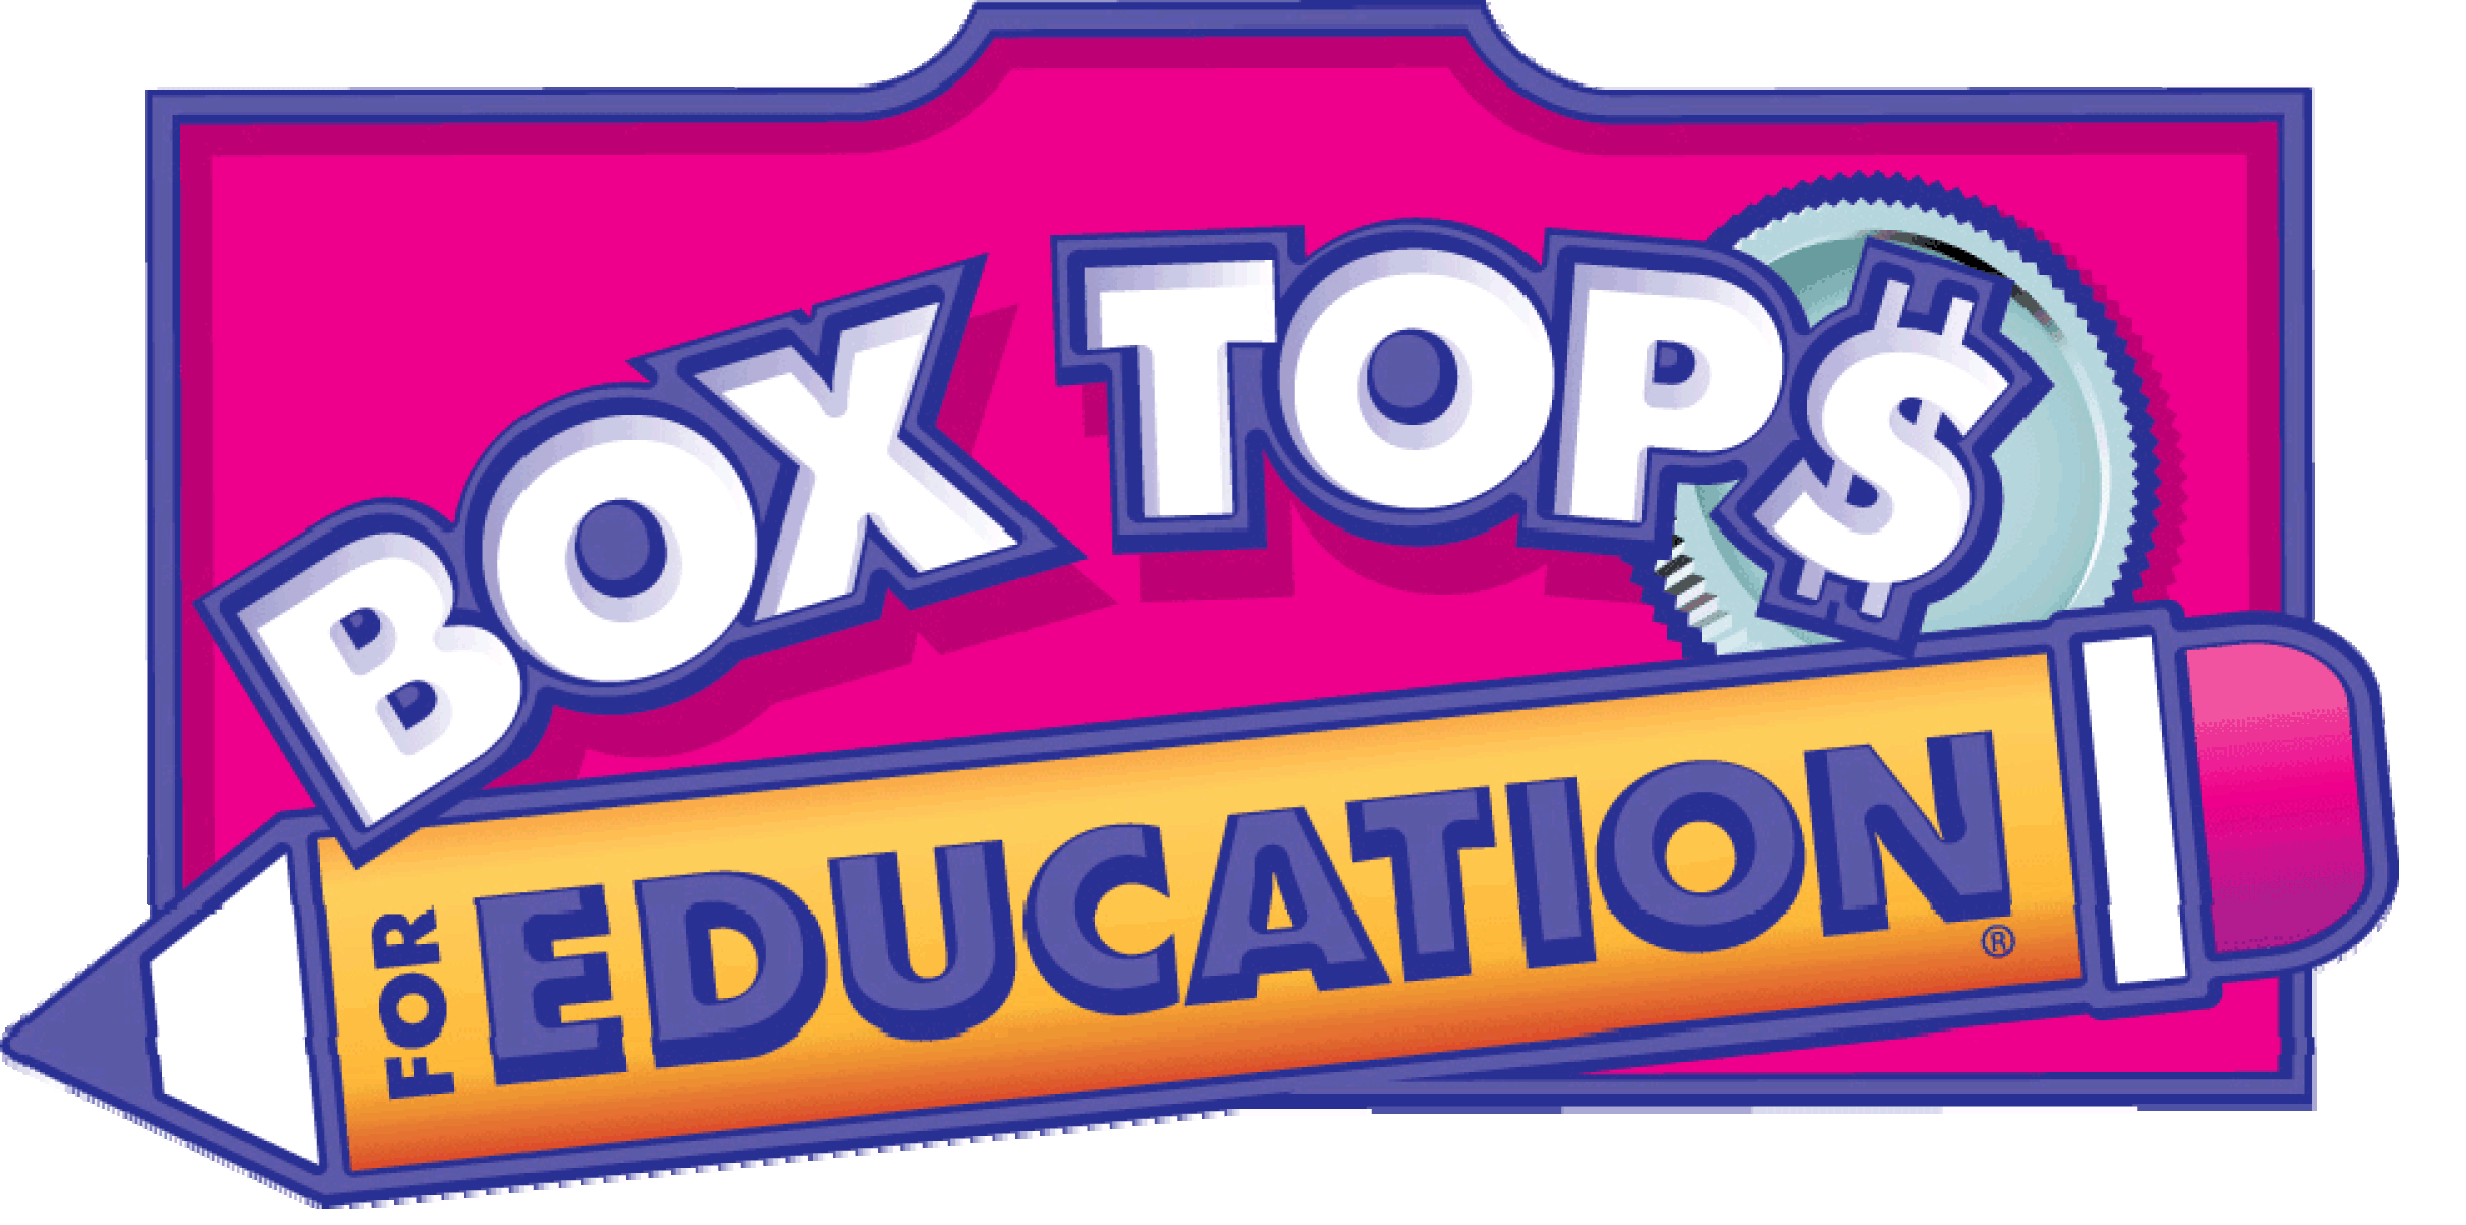 box-tops-logo1.png